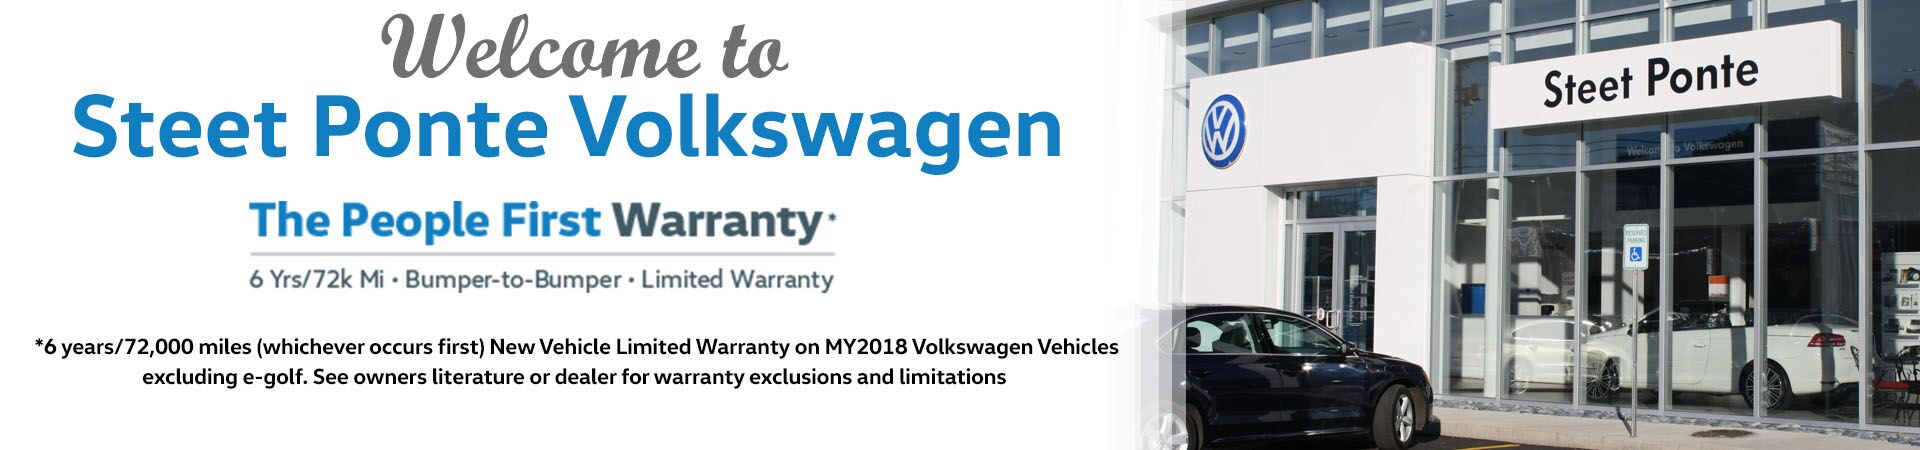 Peoples Warranty Slide-Steet Ponte VW